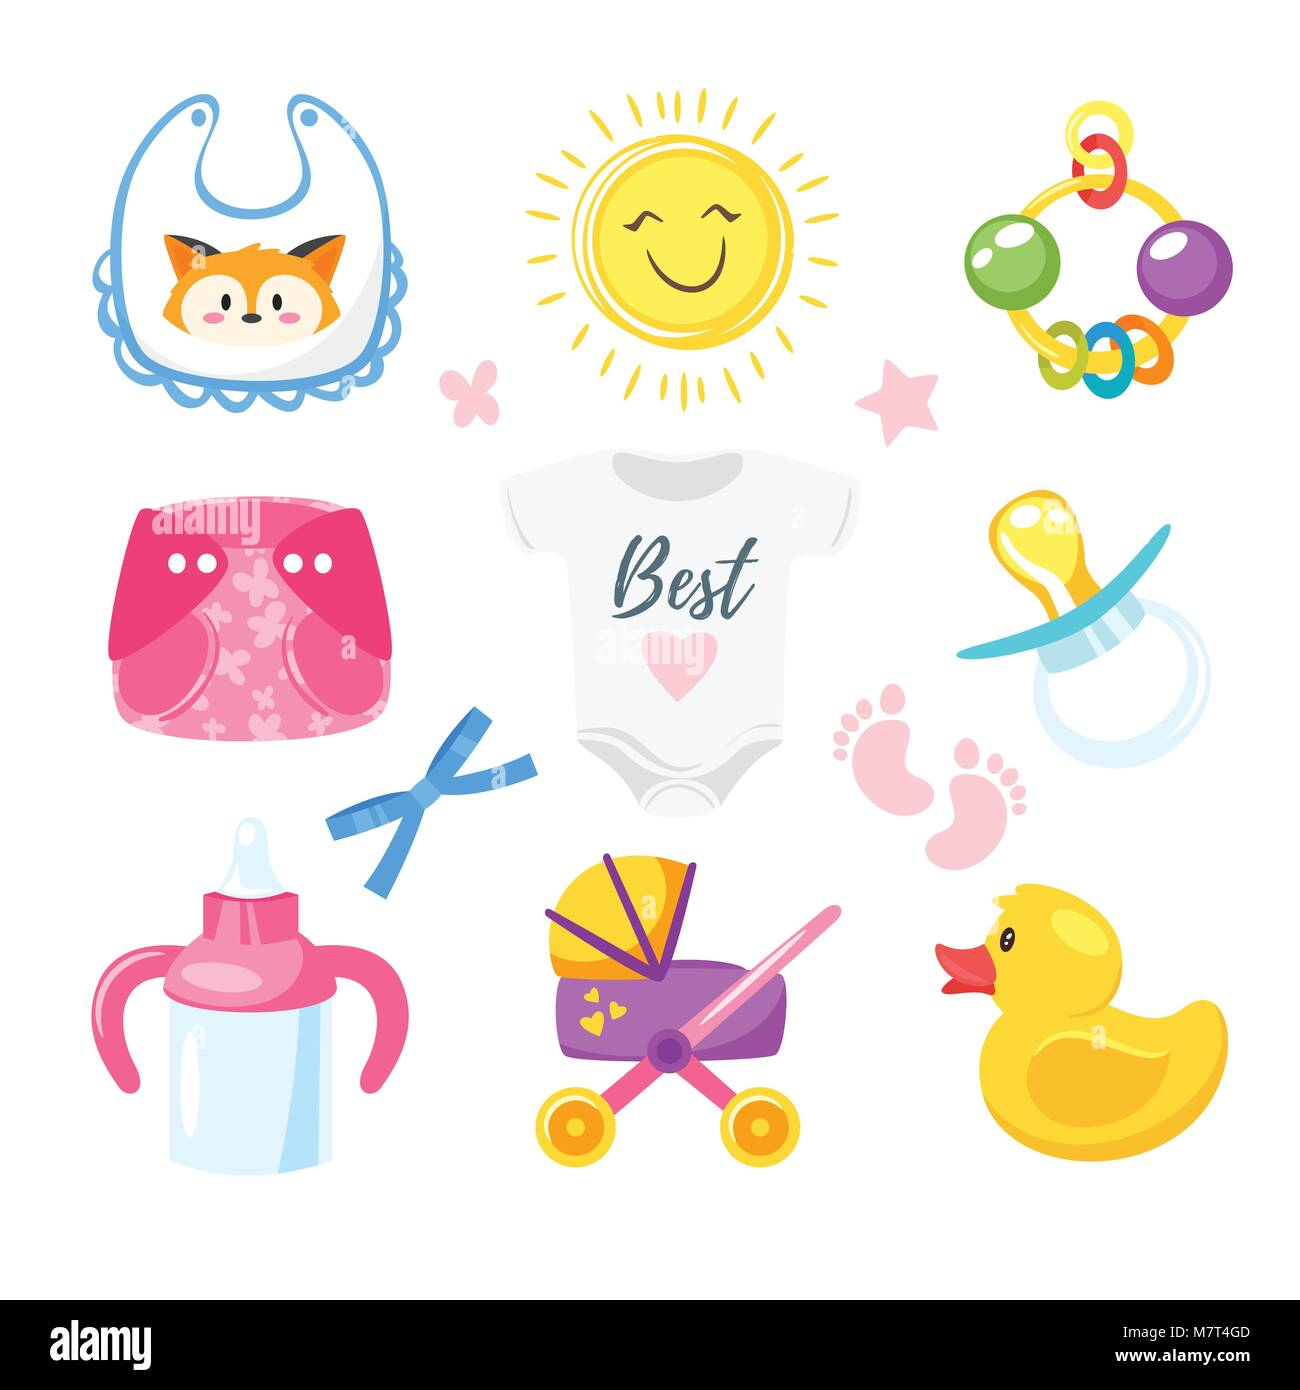 Arrival symbols stock photos arrival symbols stock images alamy vector cartoon style illustration of baby shower set of symbols for boy and girl newborn buycottarizona